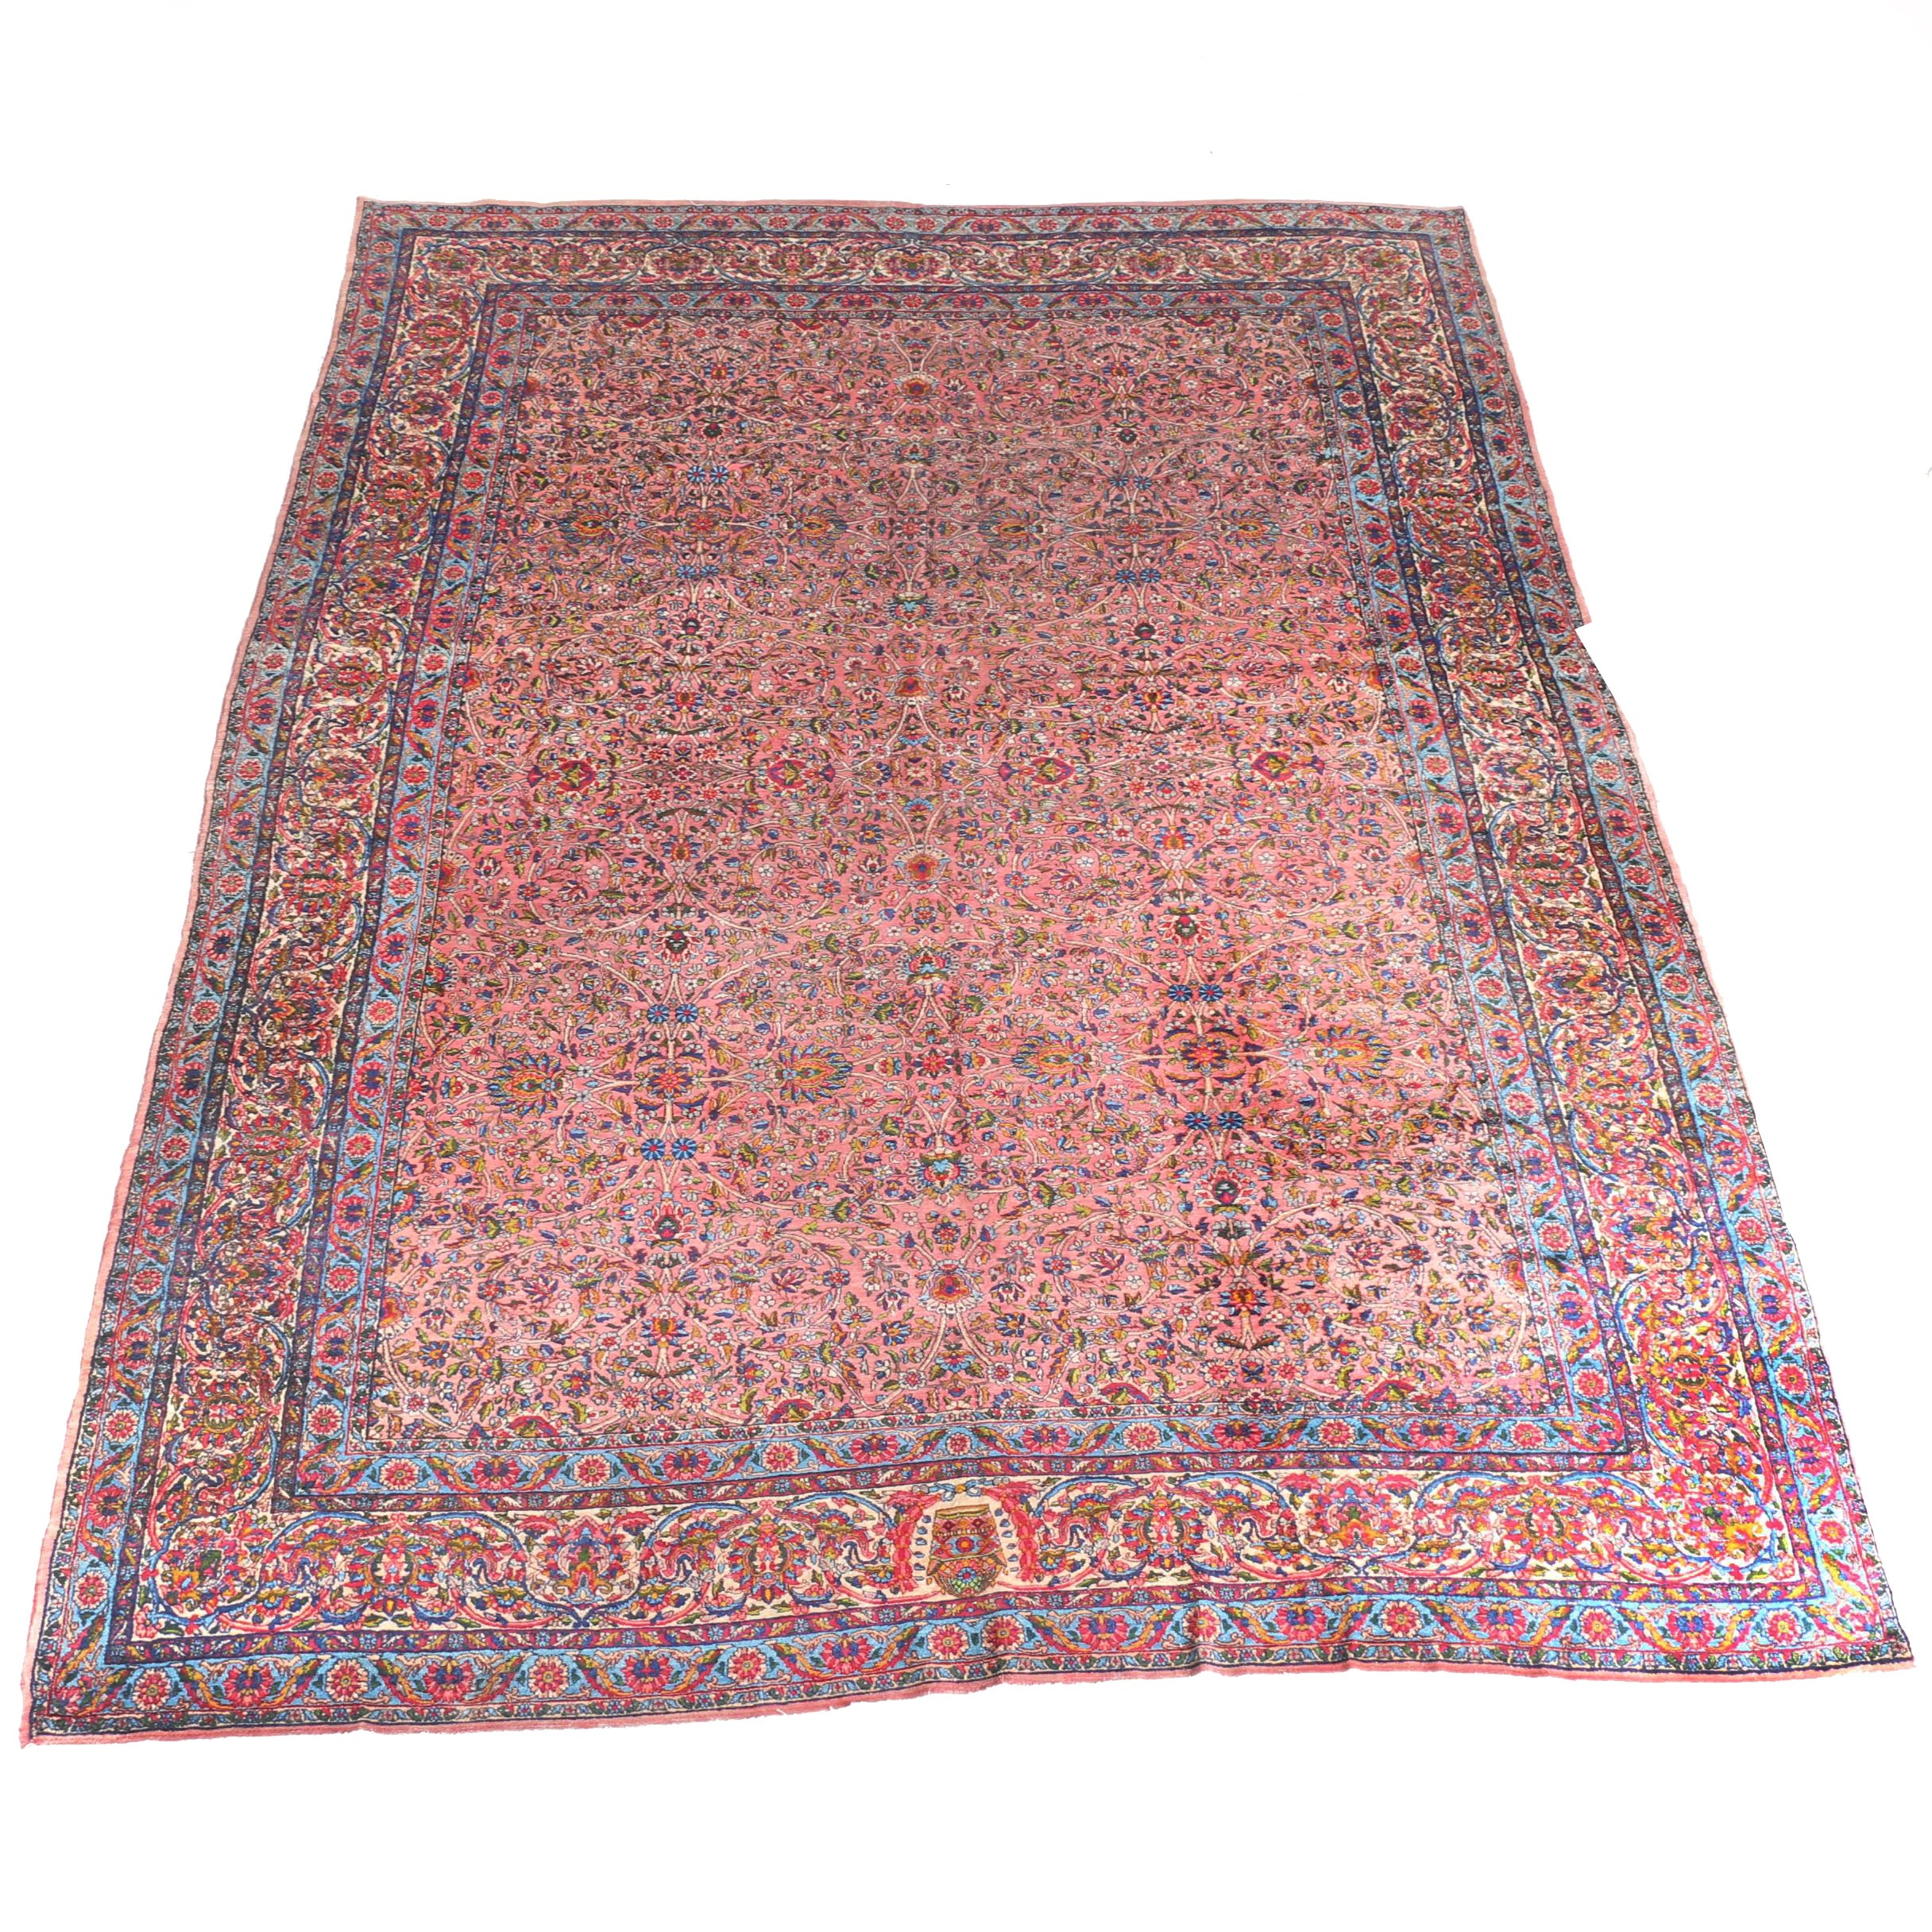 Hand-Knotted Iranian Kerman Area Rug